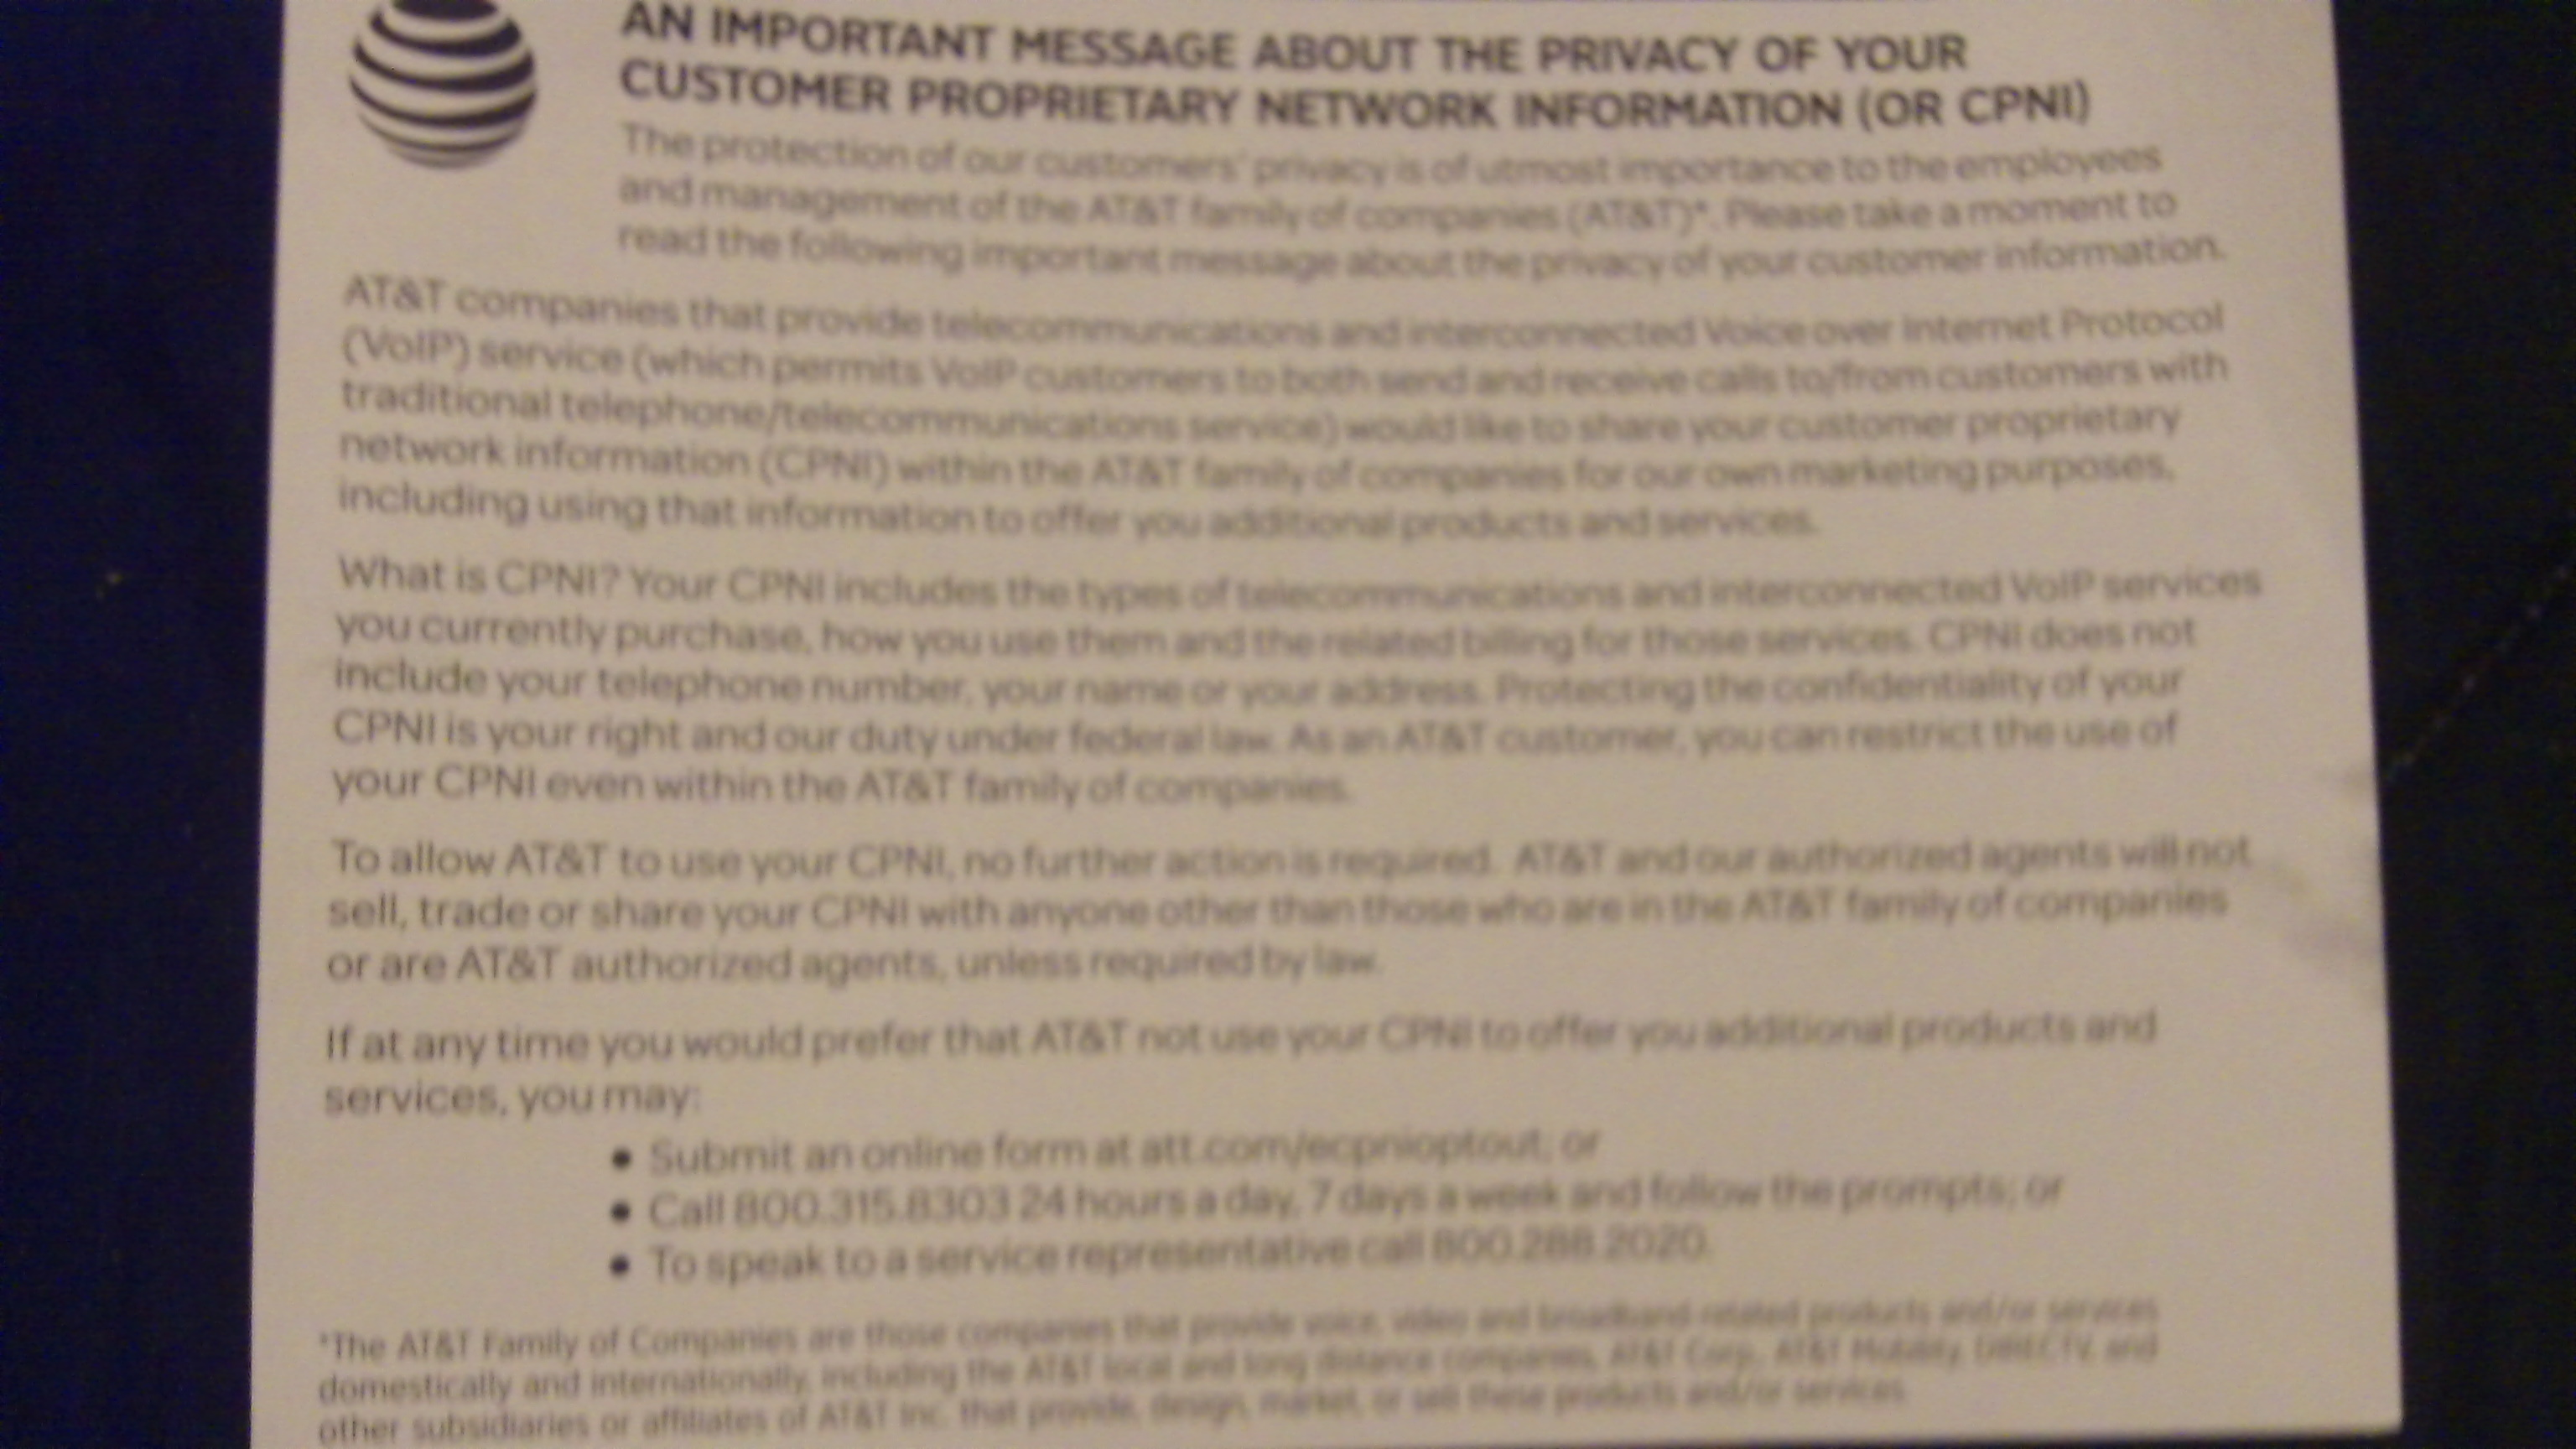 AT&T postcard notice in March 2016 about CPNI